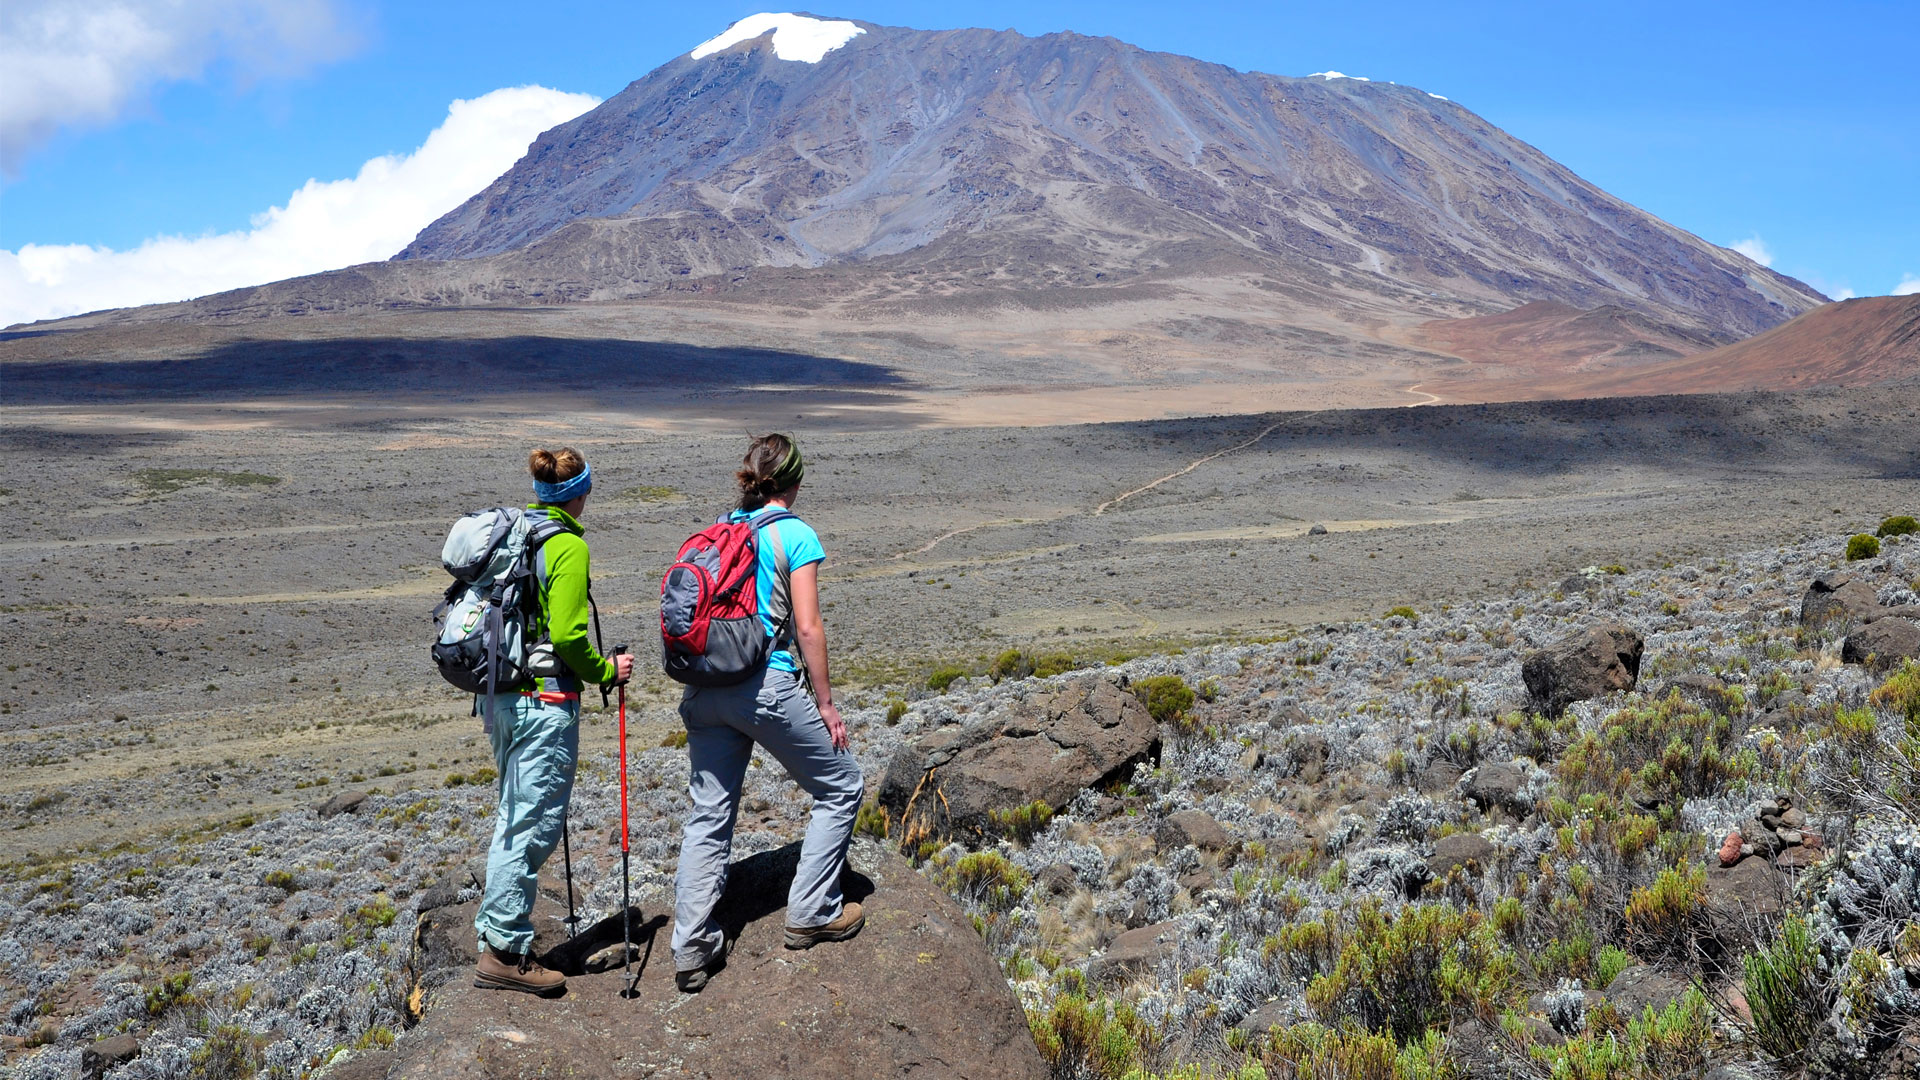 Mt. Kilimanjaro Day Hike